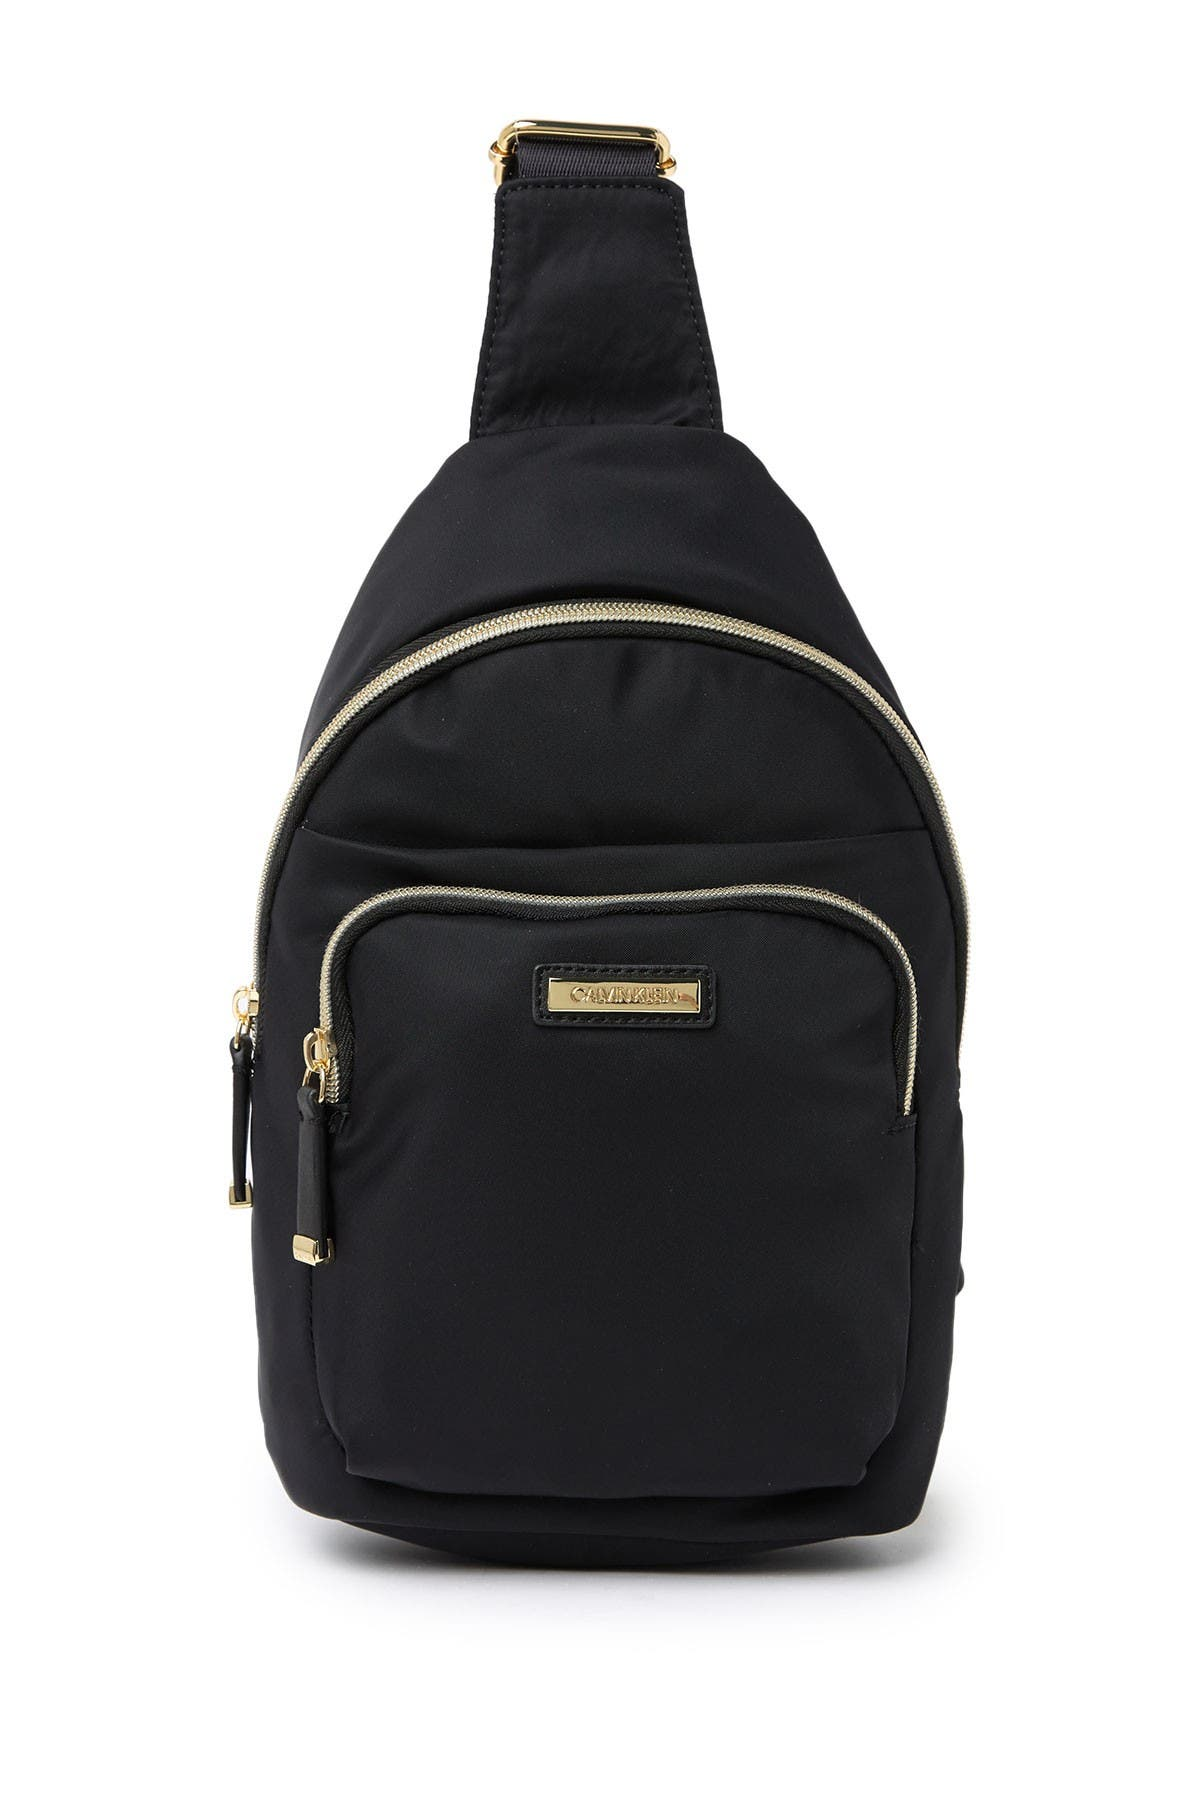 Image of Calvin Klein Nylon Crossbody Backpack